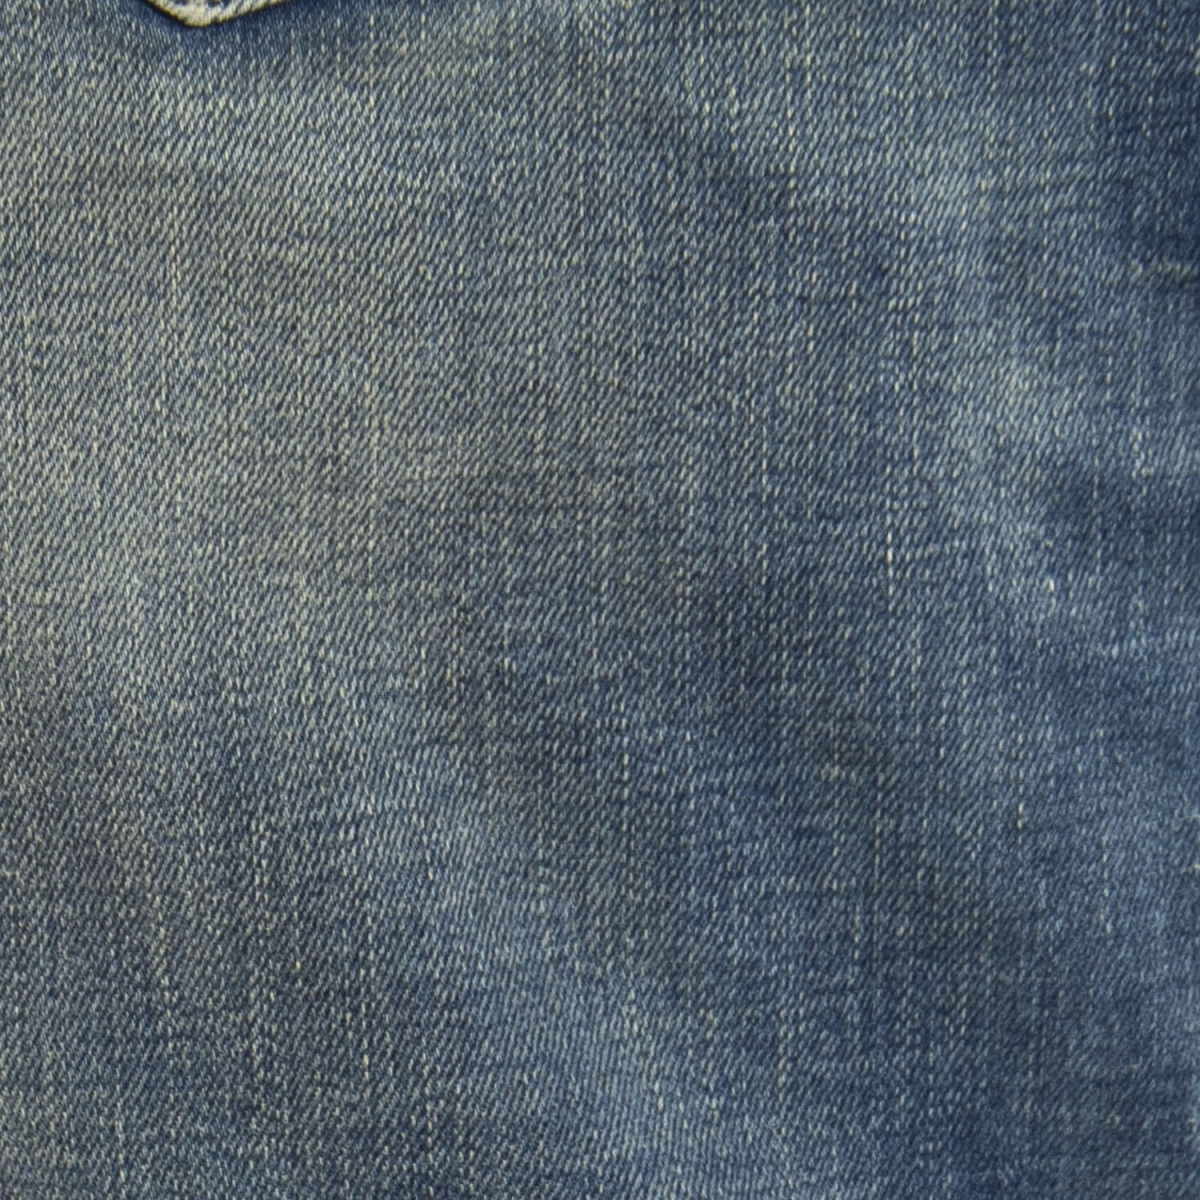 ropa Jeans hombre Jeans GL078F GIANNI LUPO Cafedelmar Shop